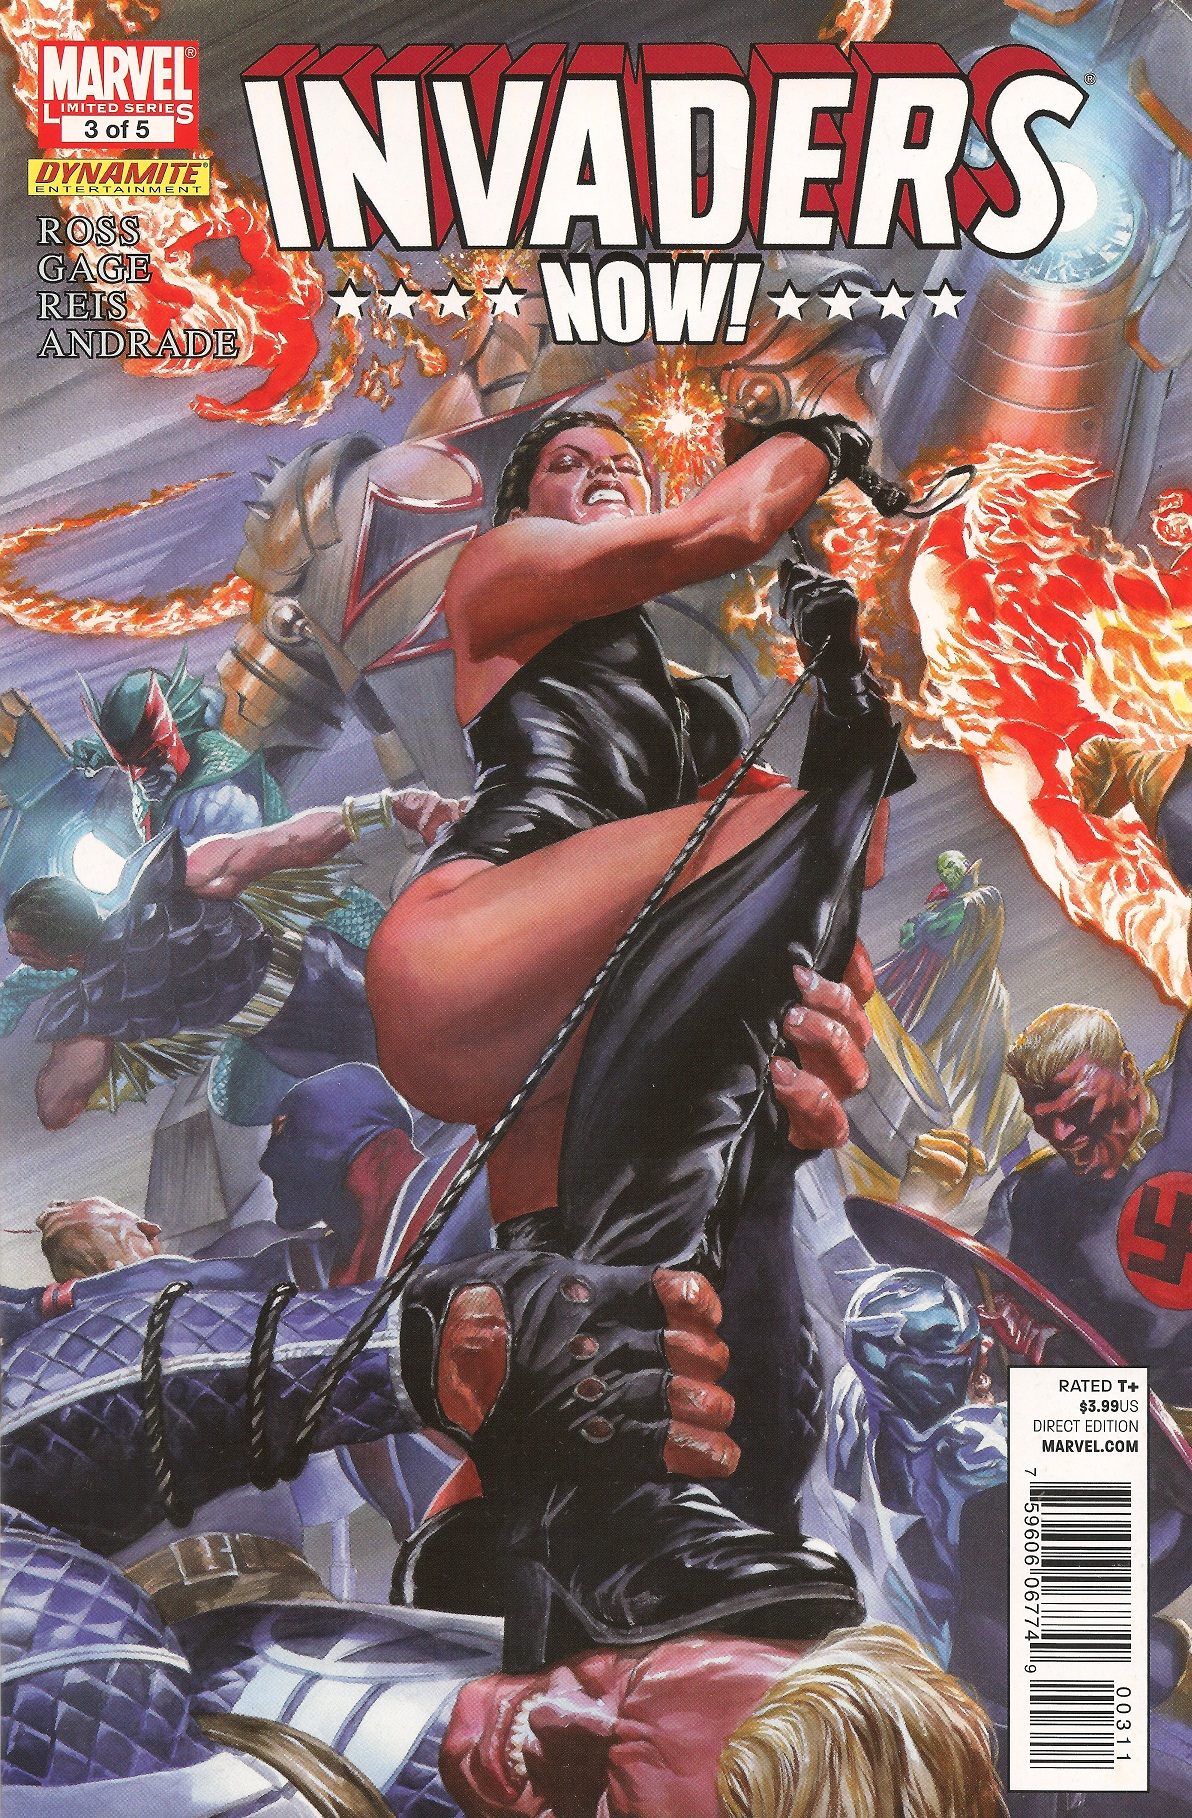 Marvel's Nazi-Killers Get Alt-History Reboot in Invaders Now | WIRED